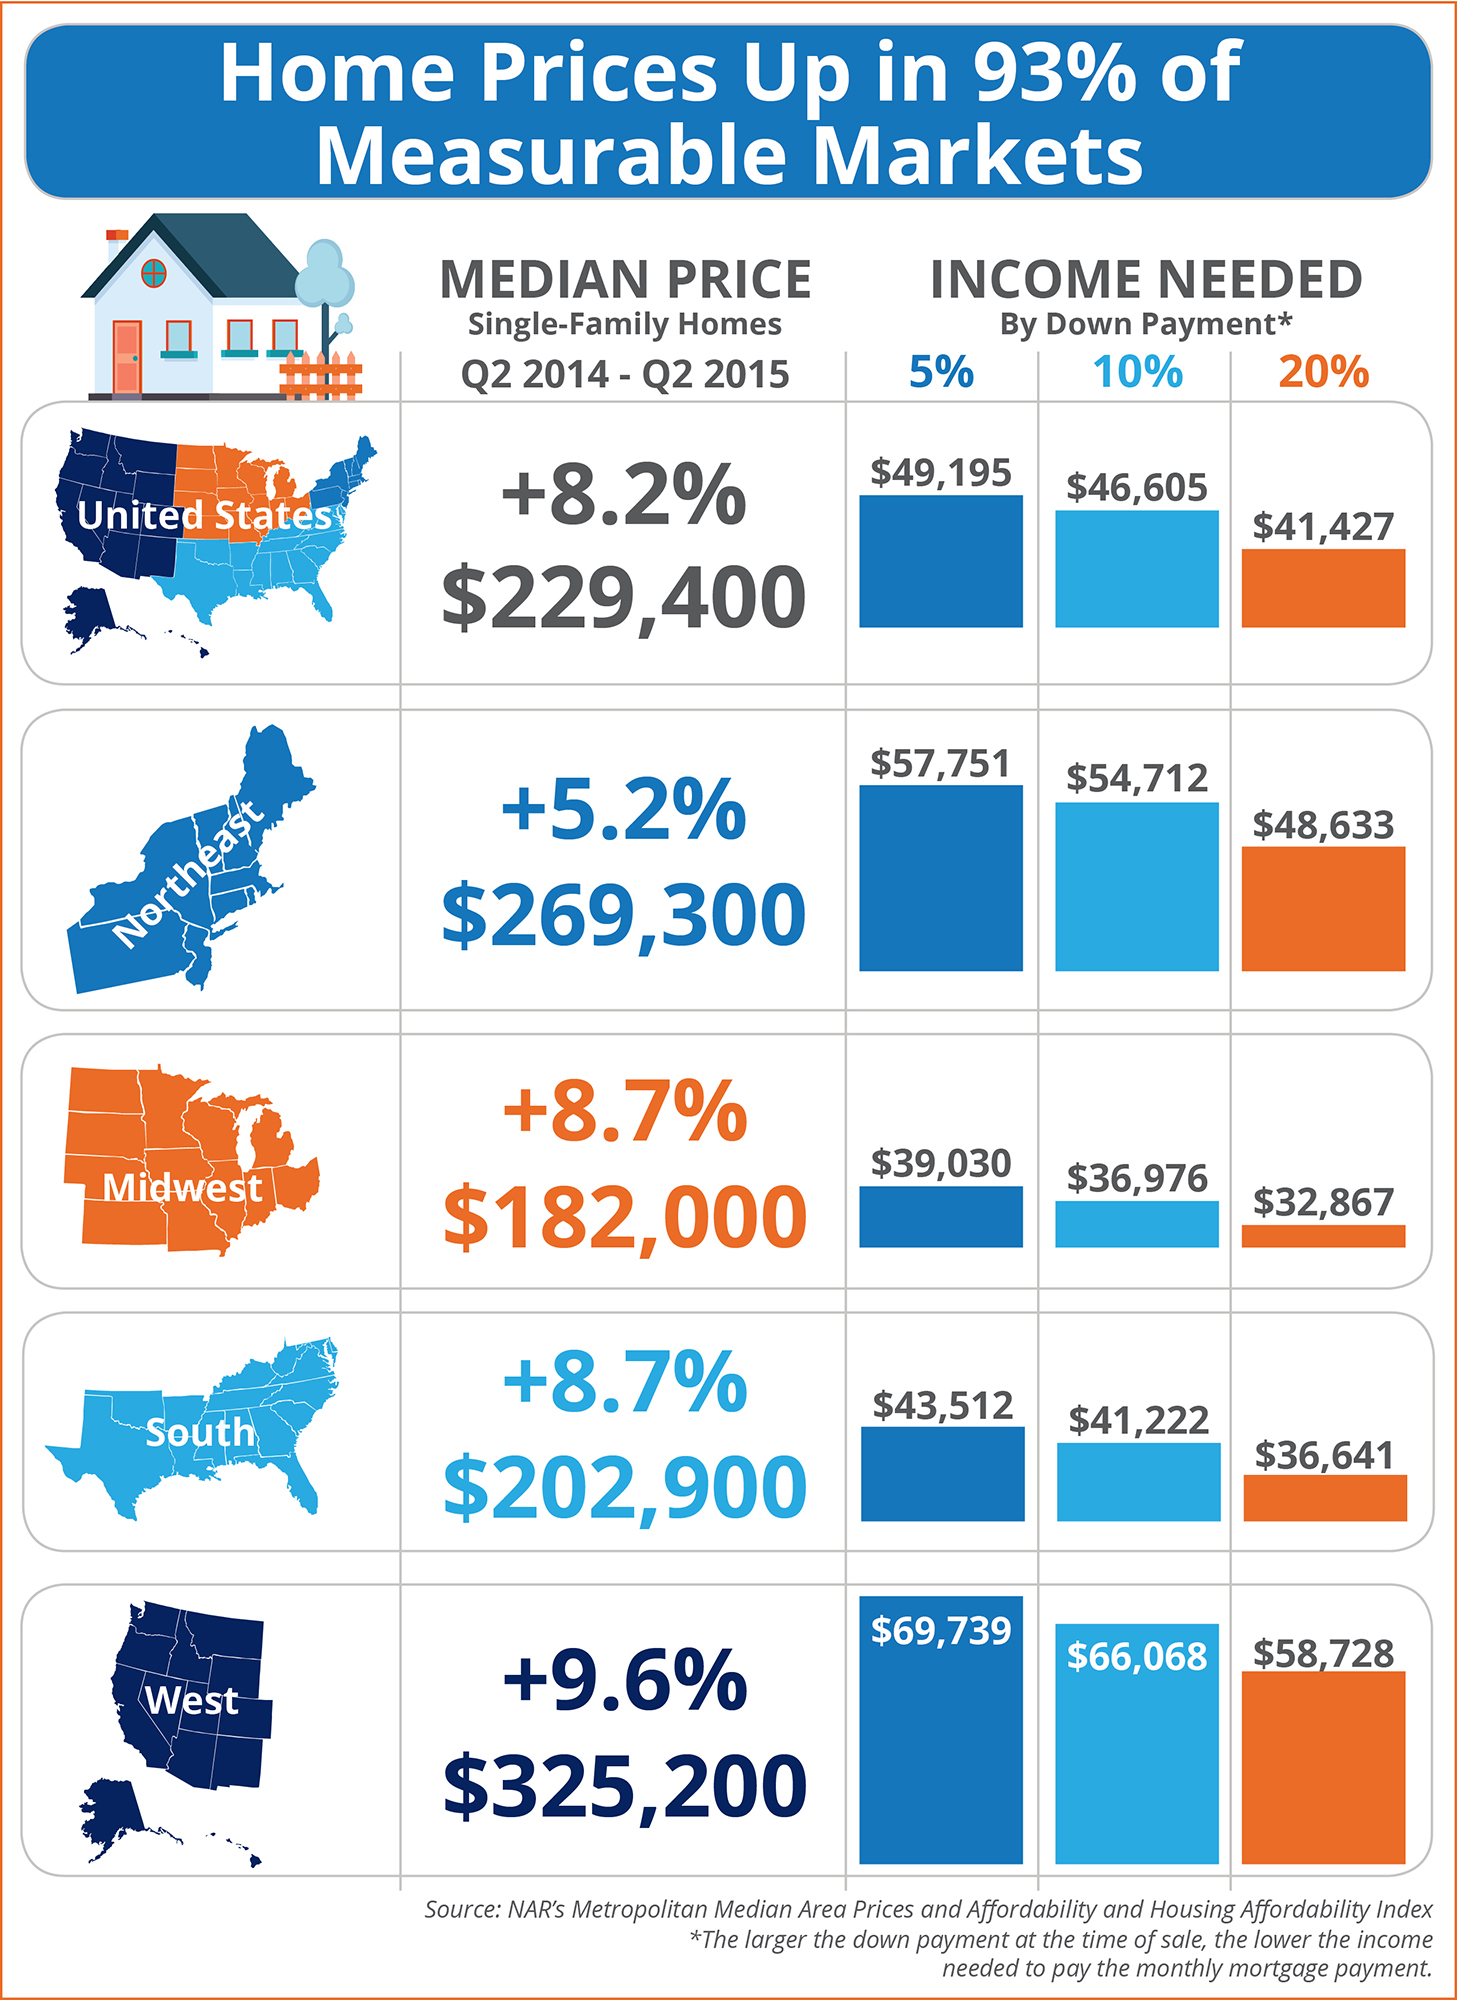 Home Prices Up in 93% of Measurable Markets [INFOGRAPHIC] | Simplifying The Market